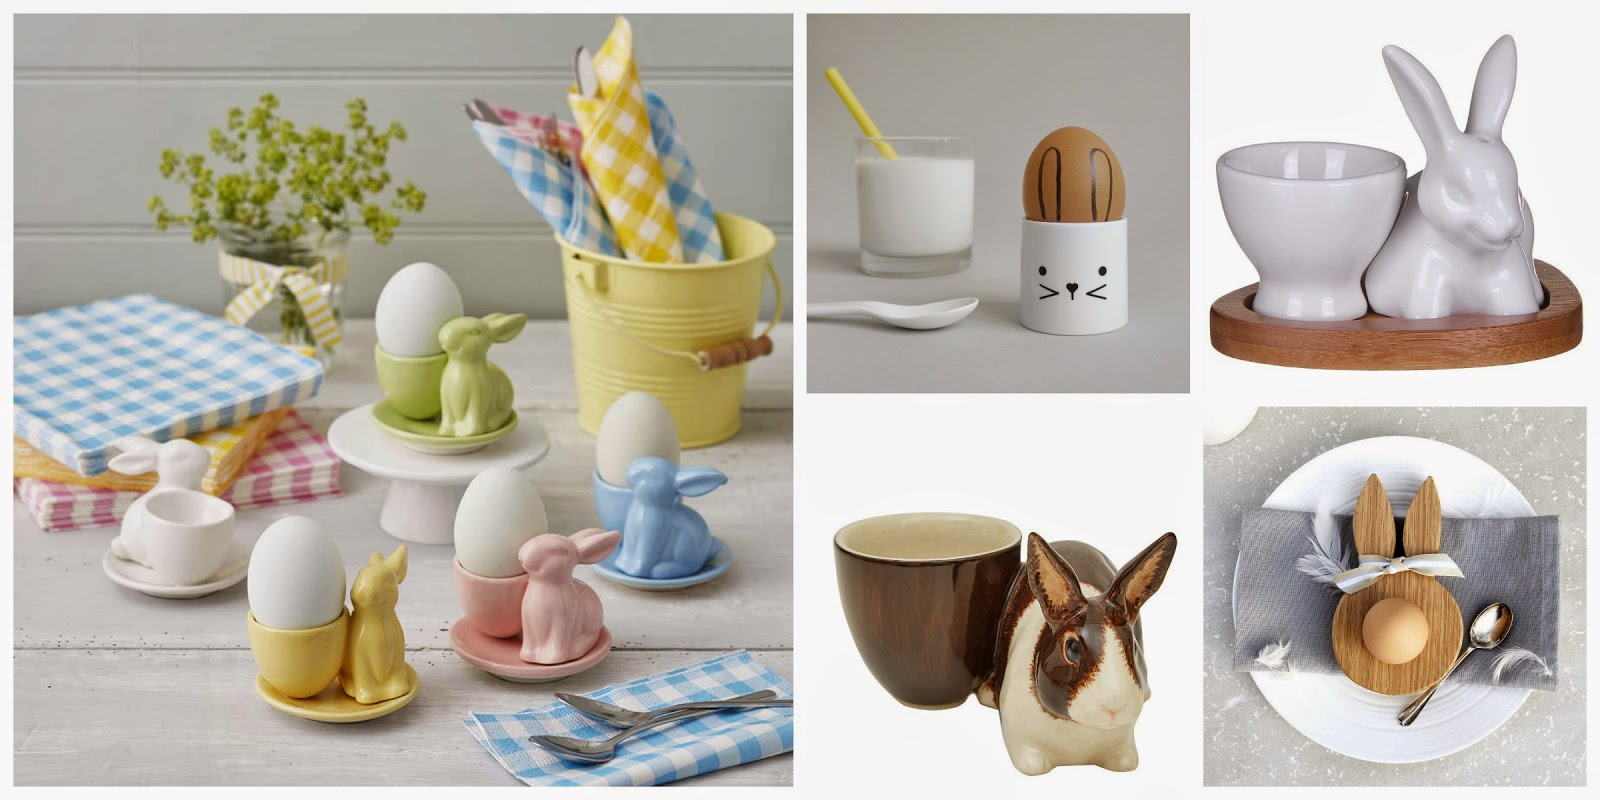 mamasVIB | V. I. BUYS: How do you like your (Easter) eggs in the morning? | easter | eater eggs | notonthehighst | mollie and fred | joie egg cup | chick egg coups | bunny egg cups | kids egg cups | egg cups | boiled eggs and soldiers | kay got the cream | tulse hill hotel | jamie oliver | egg cups | easter egg cups | kid eater | easter shopping | liberty | john lewis | china egg cups | fancy egg cups | shopping | style | blogger | mamasVIB